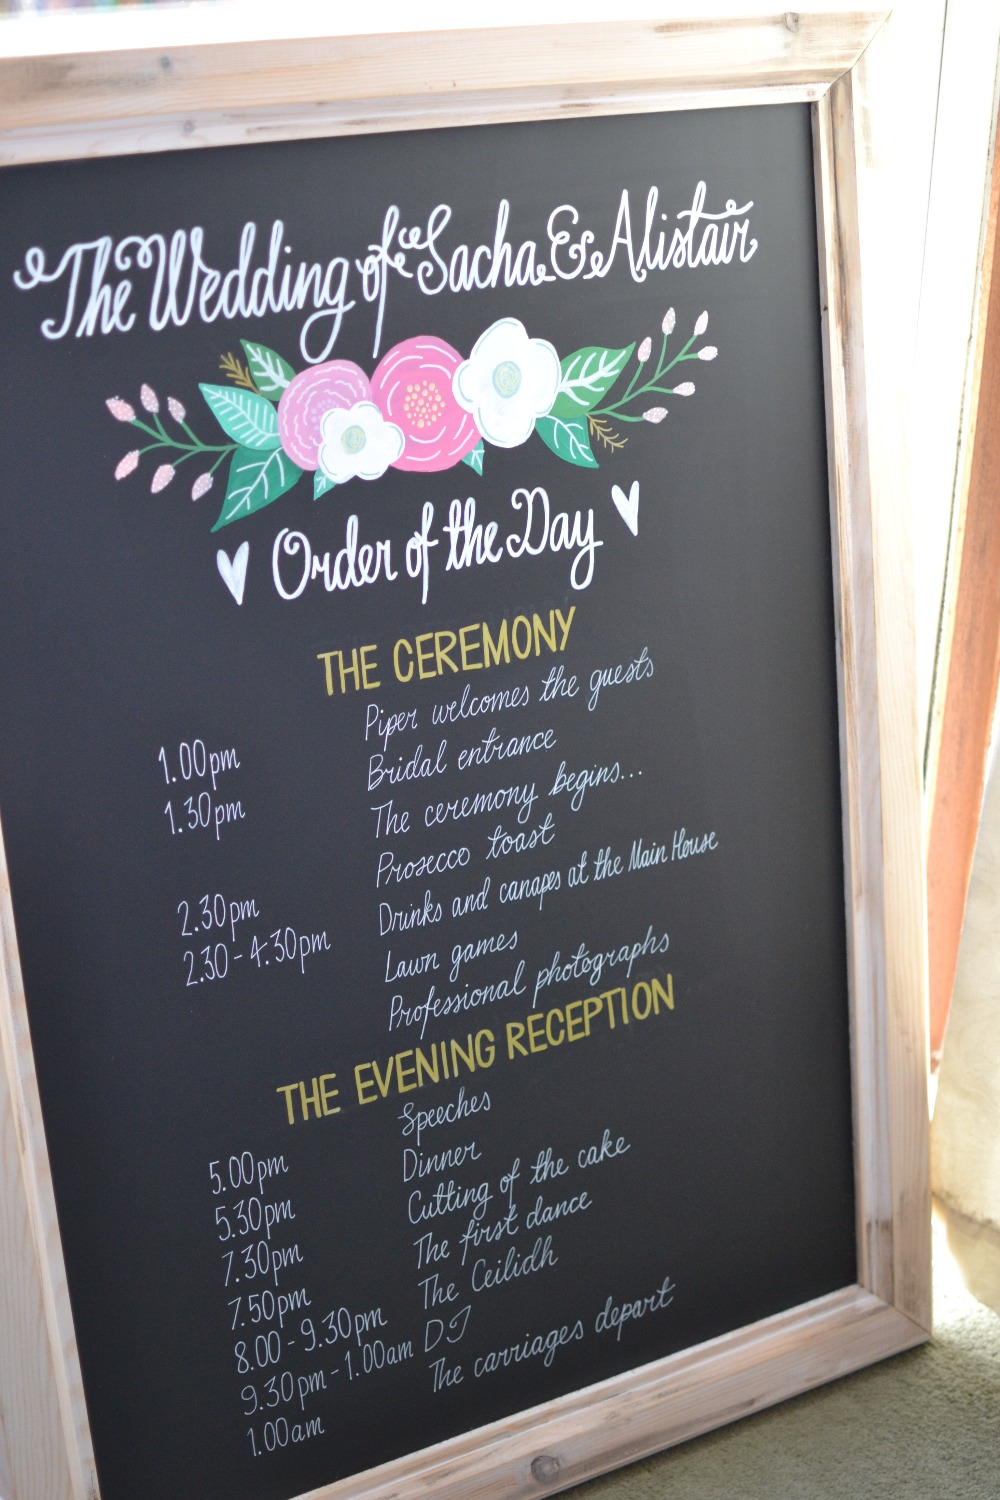 Sacha & Alistair Framed Timings Chalkboard - June 2016 (14)_edited